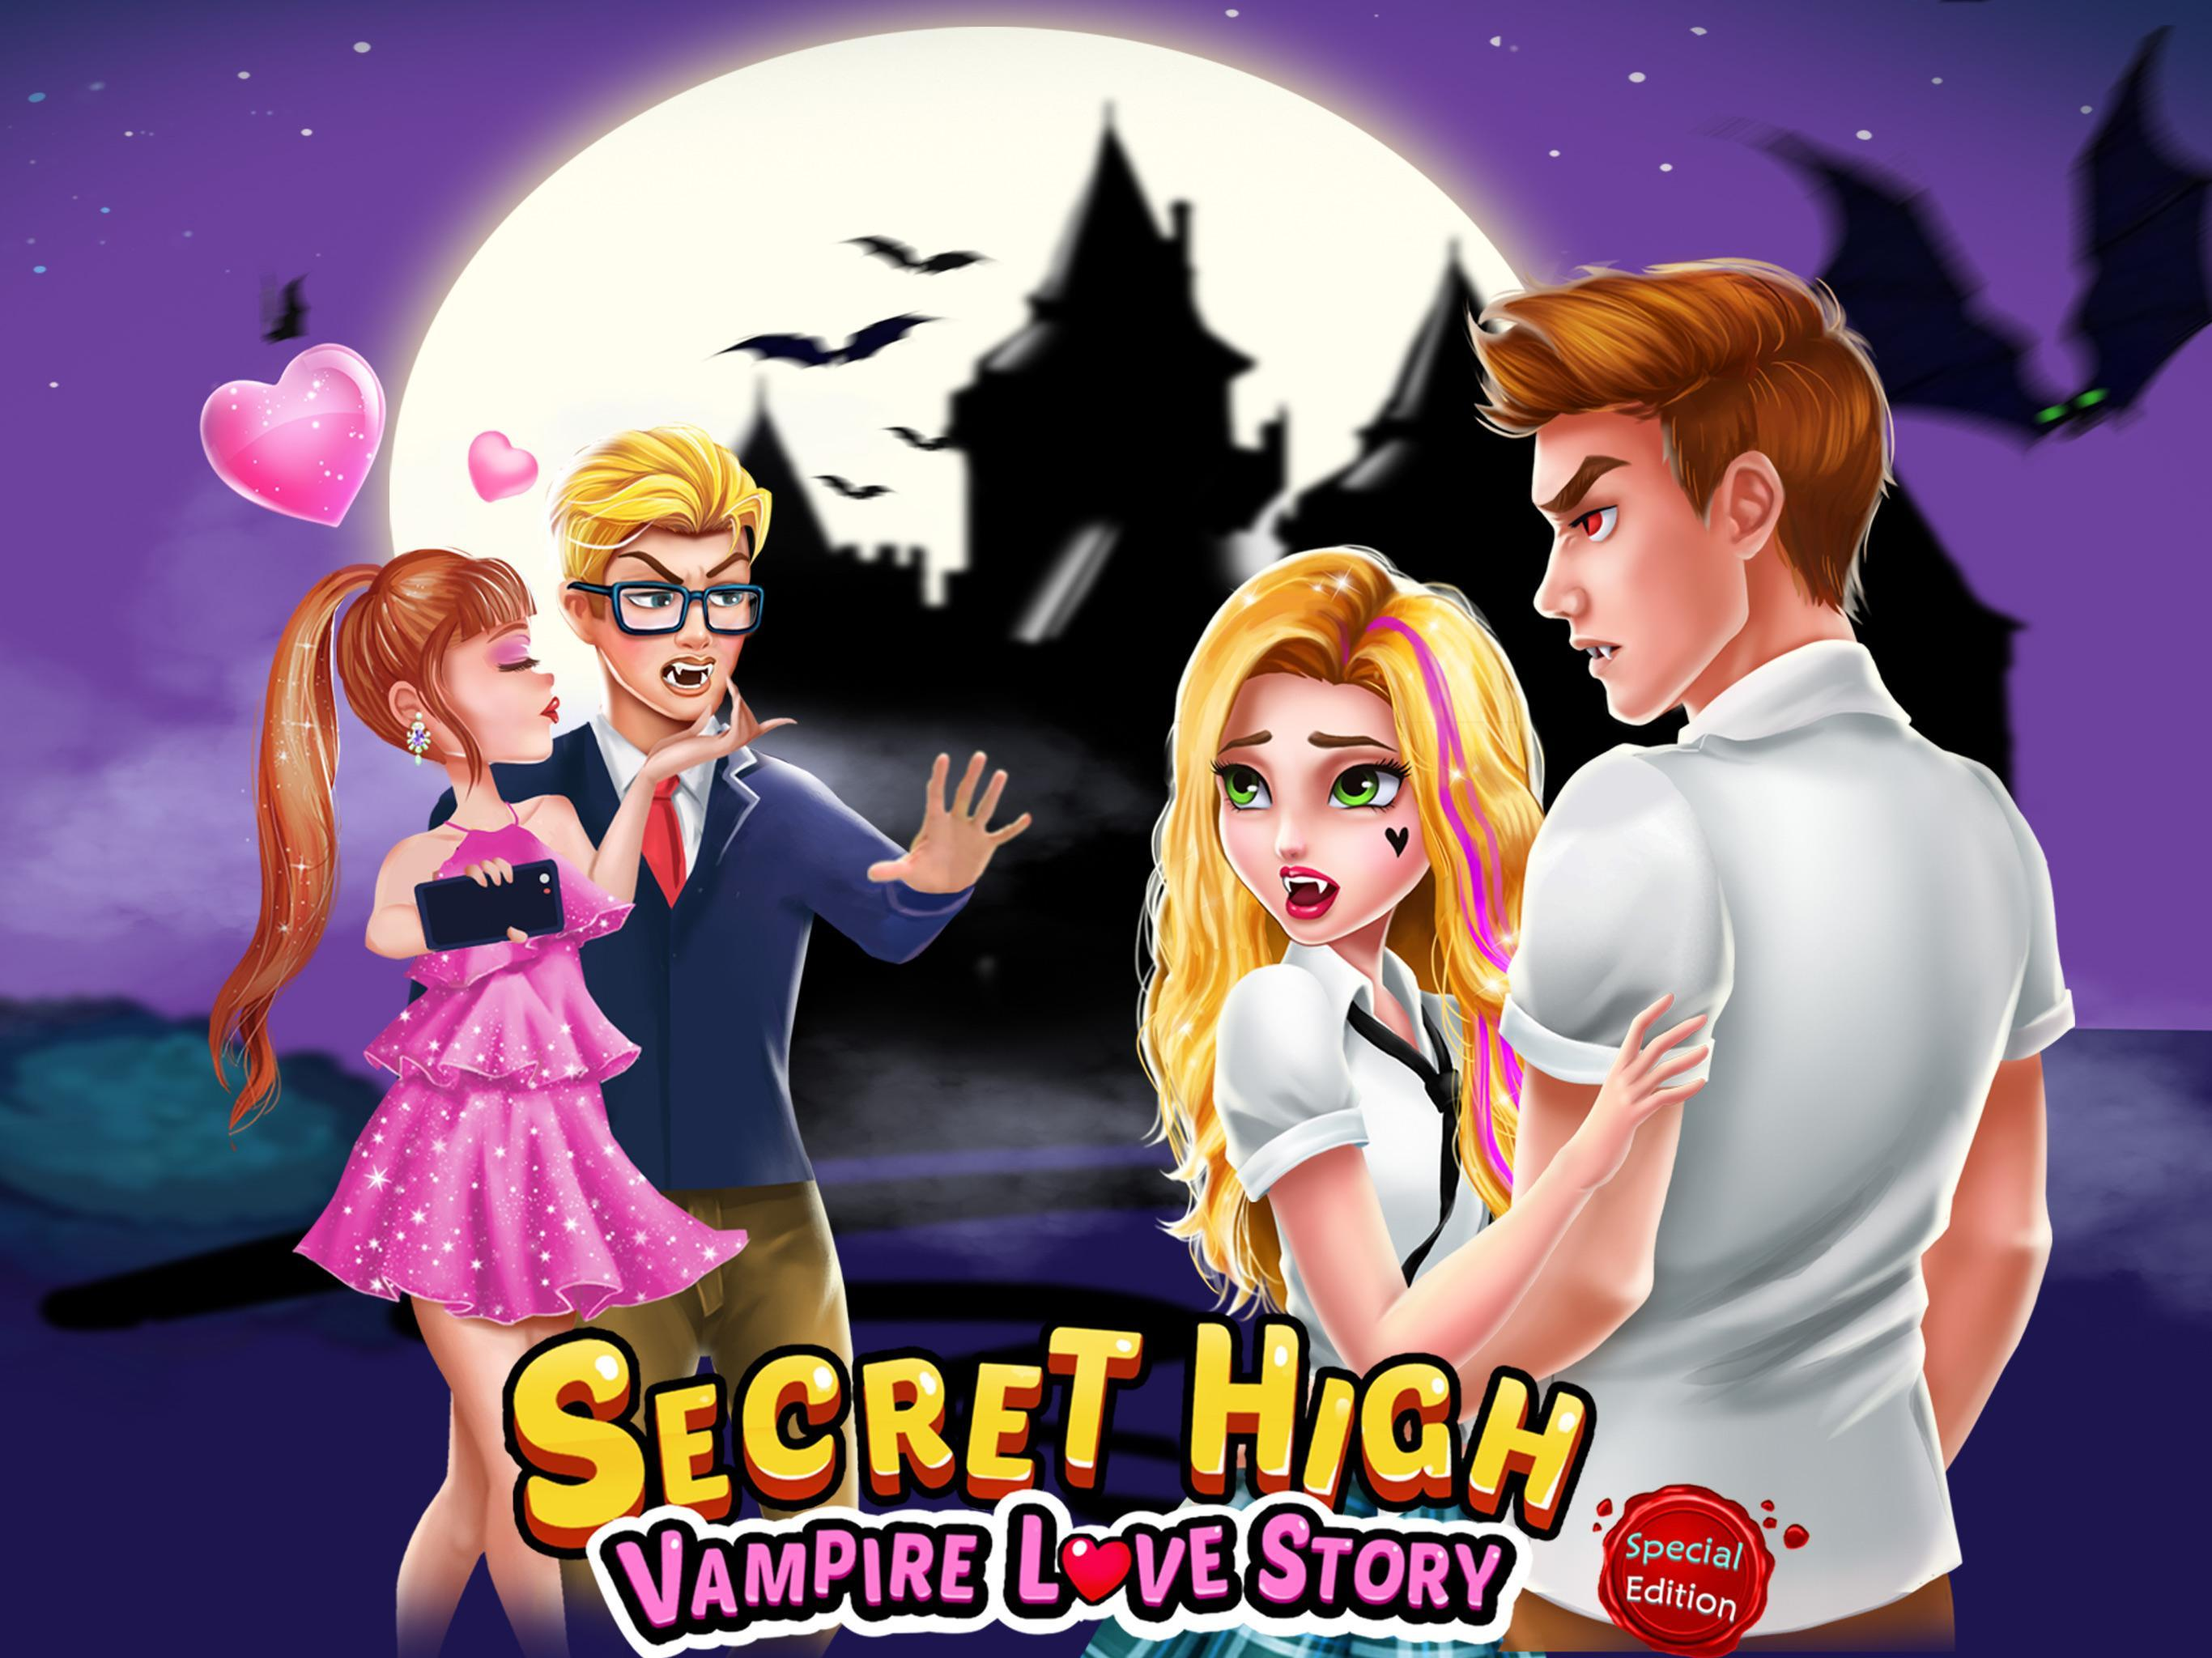 Vampire Love And Roblox Secret High School Season 1 Vampire Love Story For Android Apk